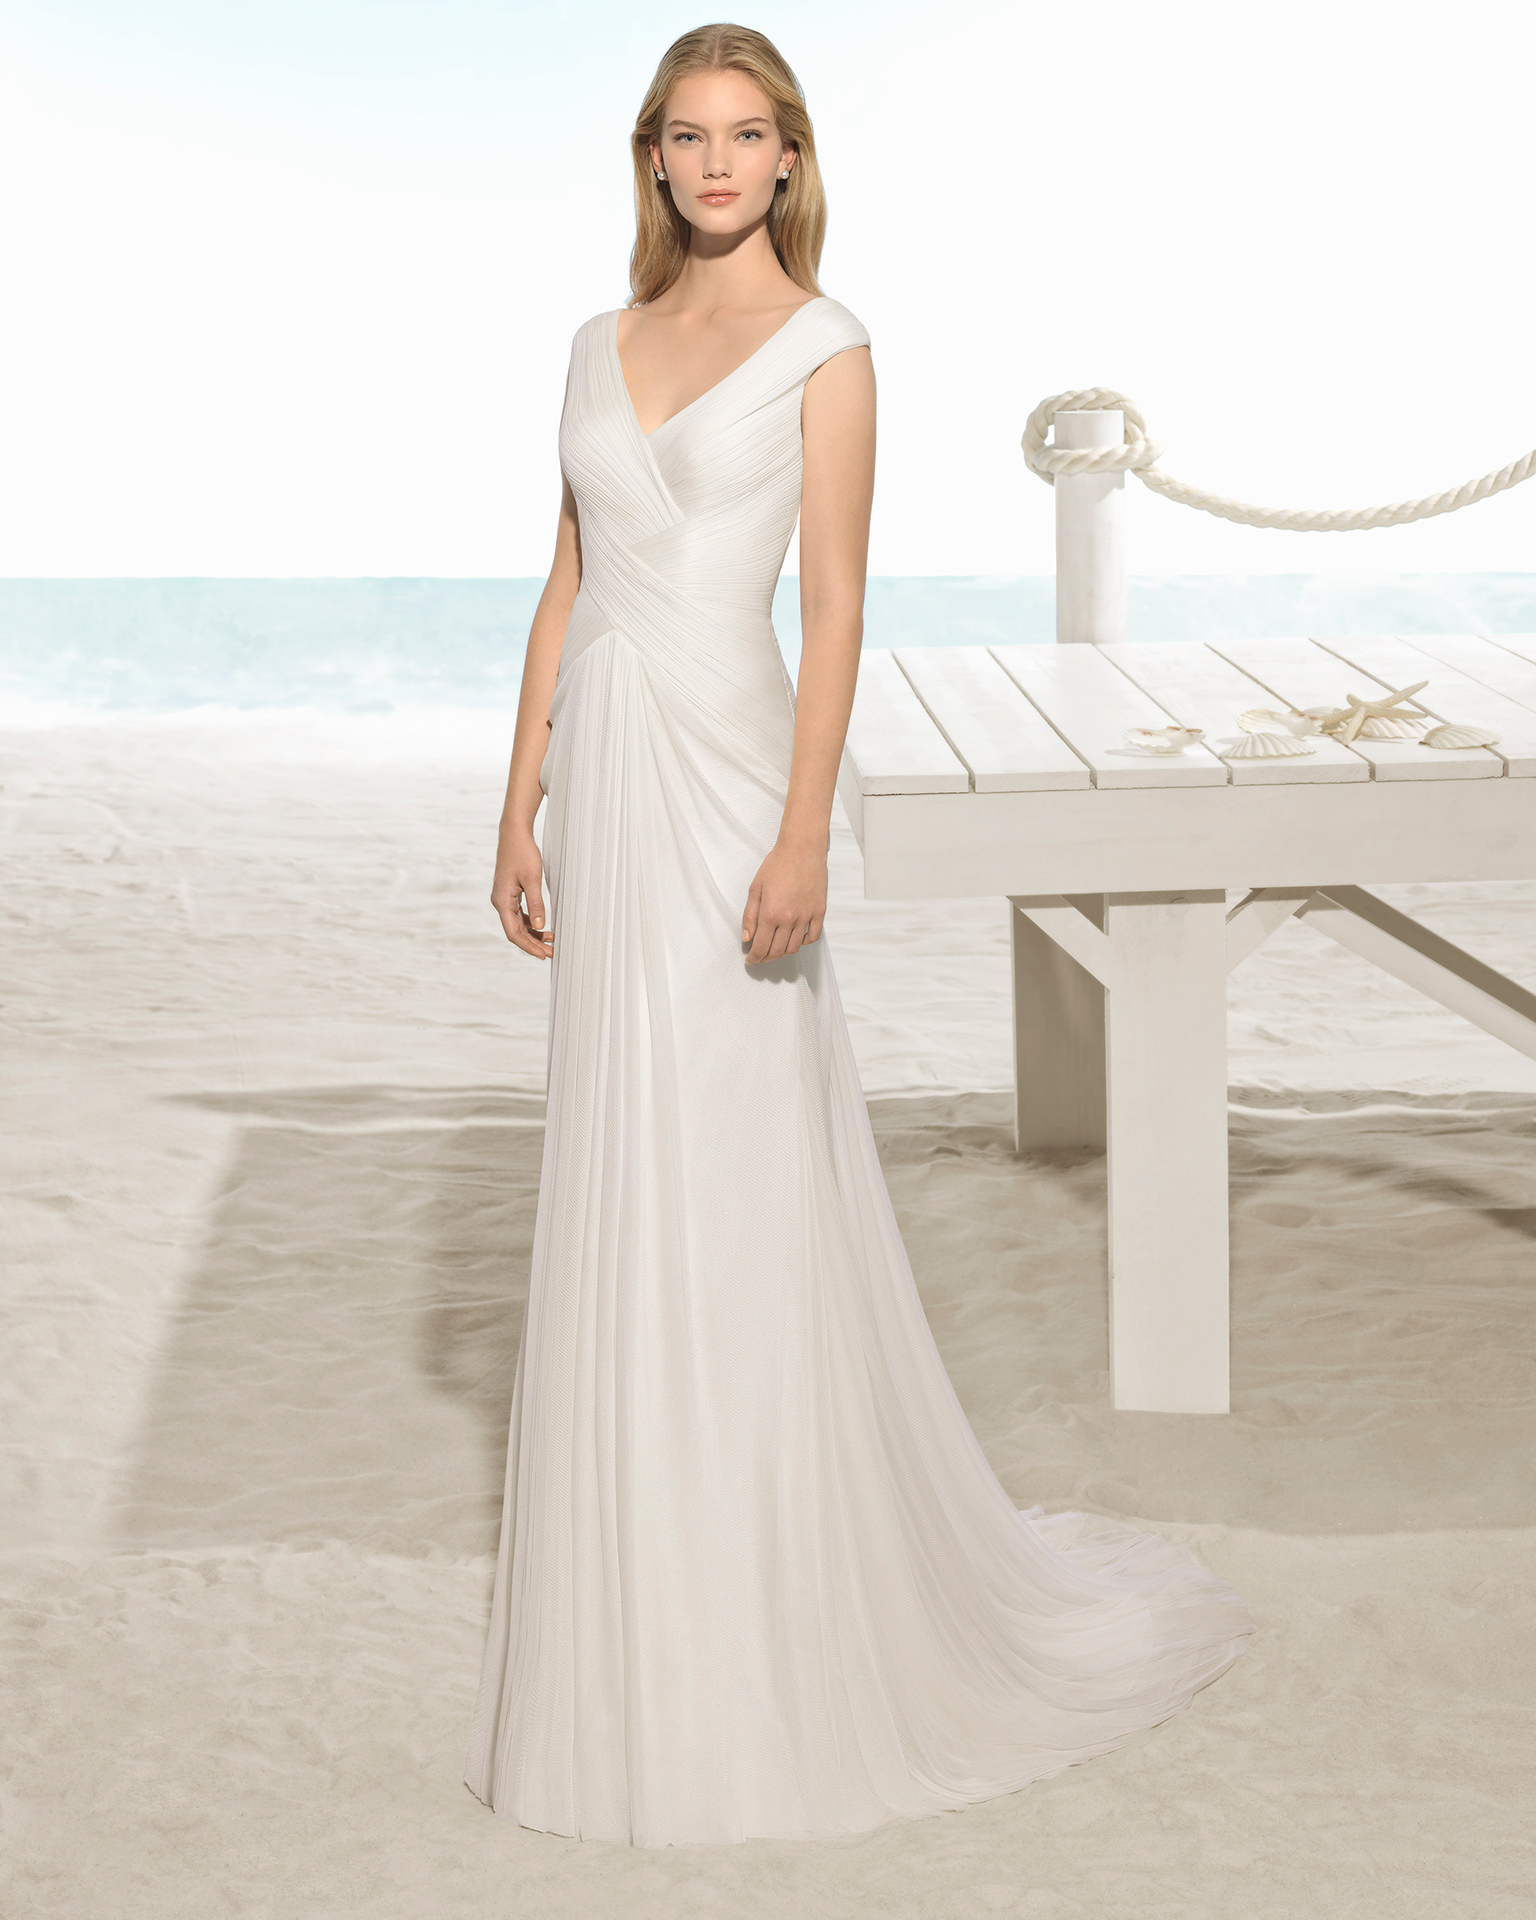 Boho-style silk muslin wedding dress with crossover neckline and back with crossover shoulder straps.